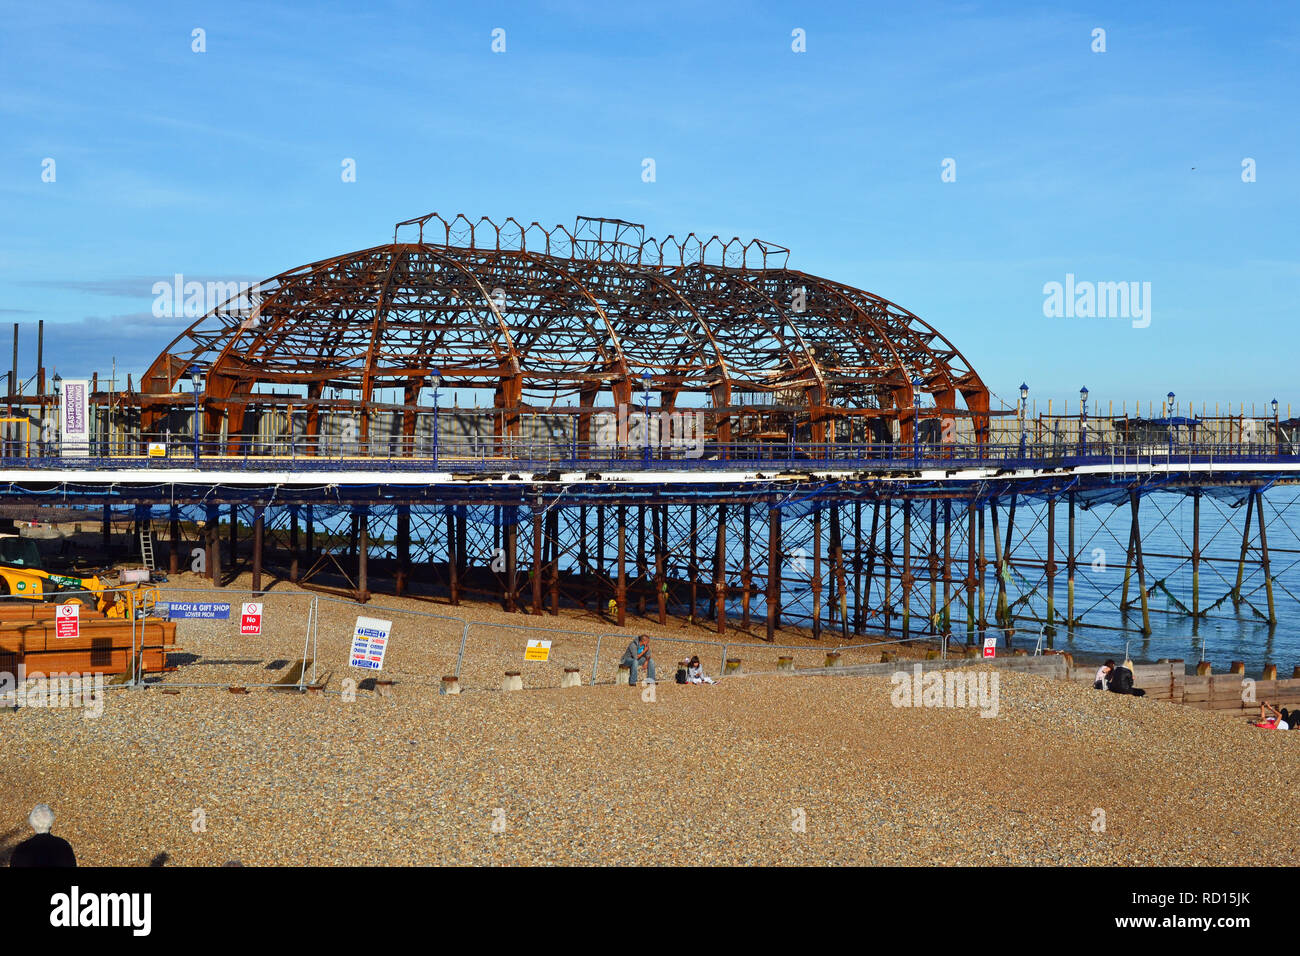 Burnt out shell of Eastbourne Pier following the fire in 2014. Eastbourne seafront, East Sussex, UK Stock Photo